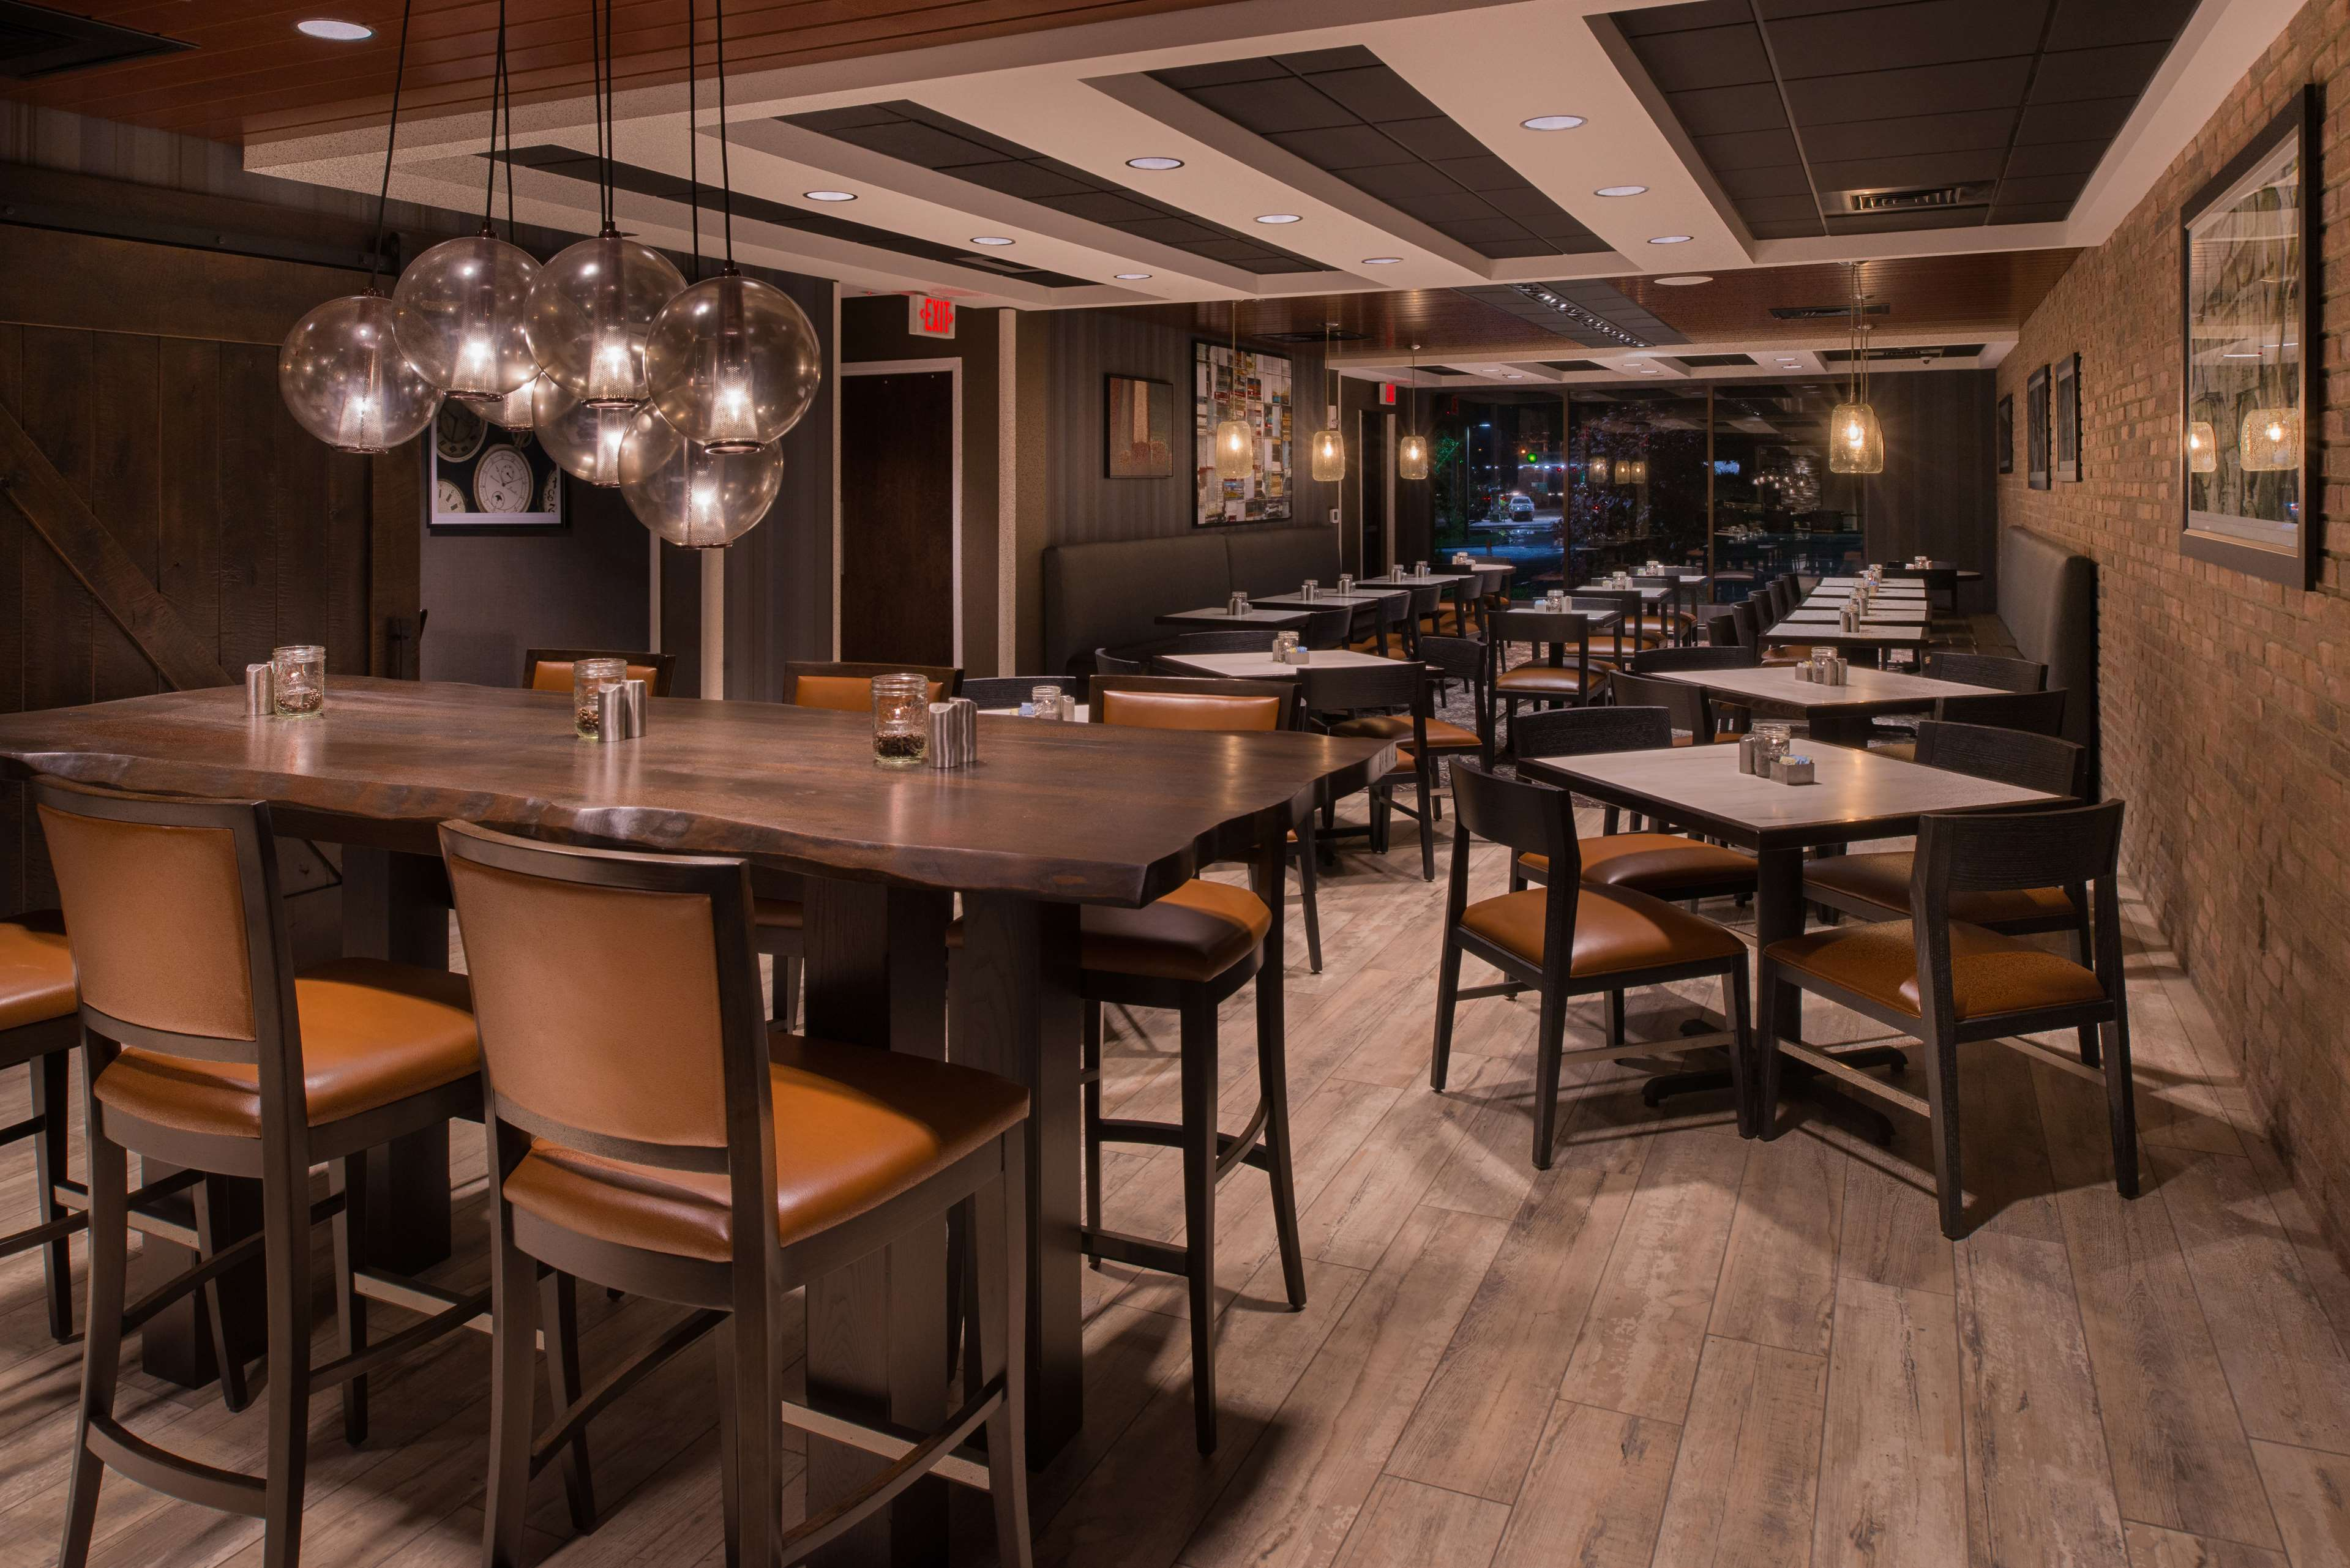 Doubletree by hilton raleigh crabtree valley raleigh - Hilton garden inn raleigh crabtree ...